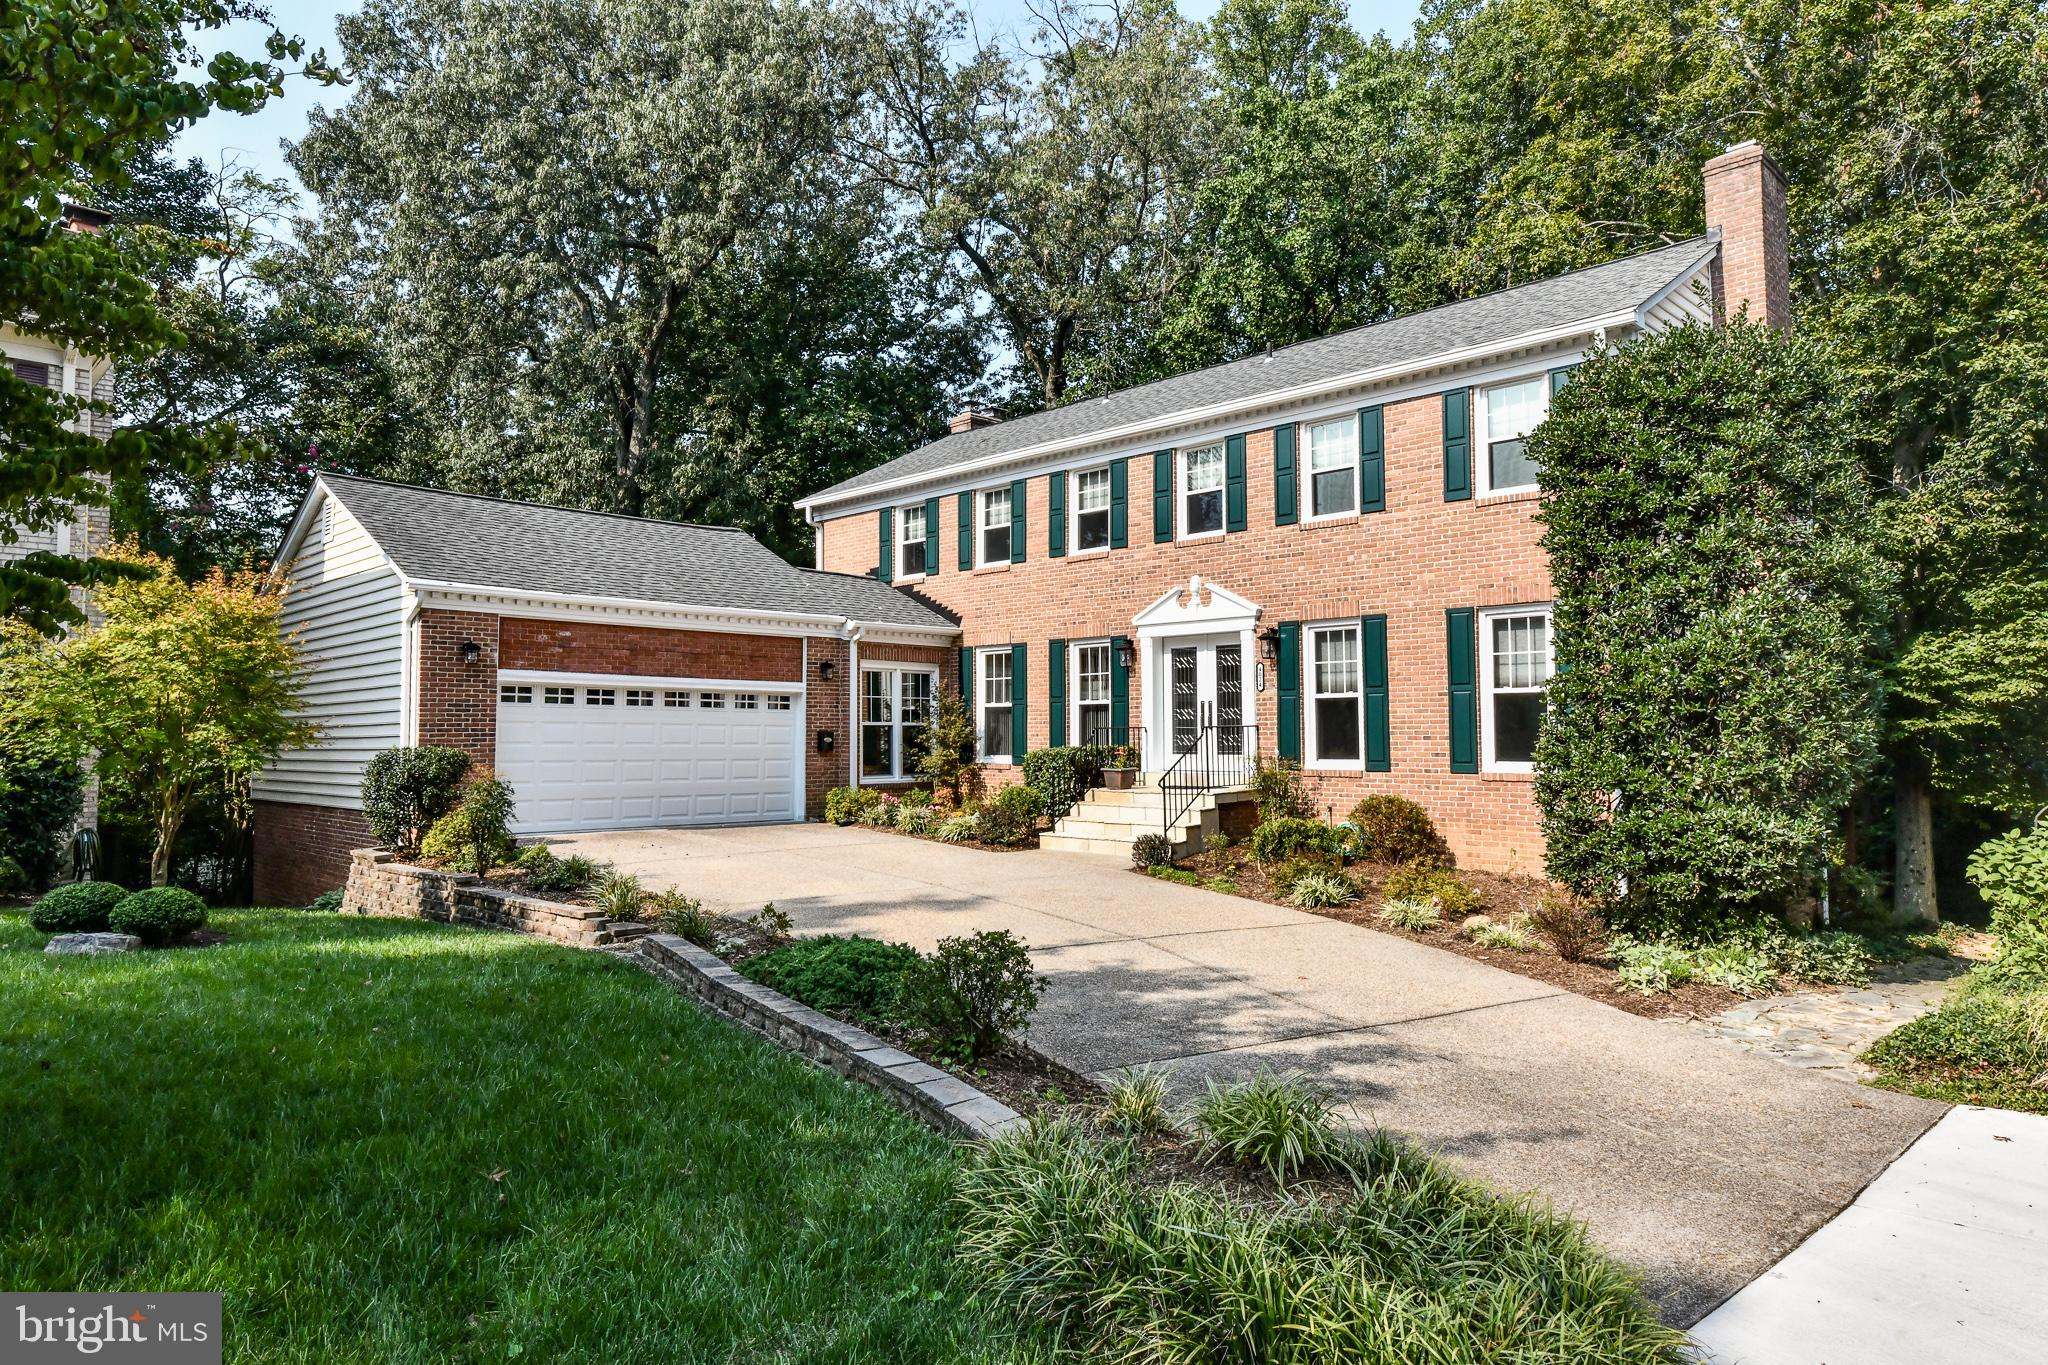 Wonderful North Arlington location!! This 6 bedroom, 4.5 bath colonial style home sits on one of the